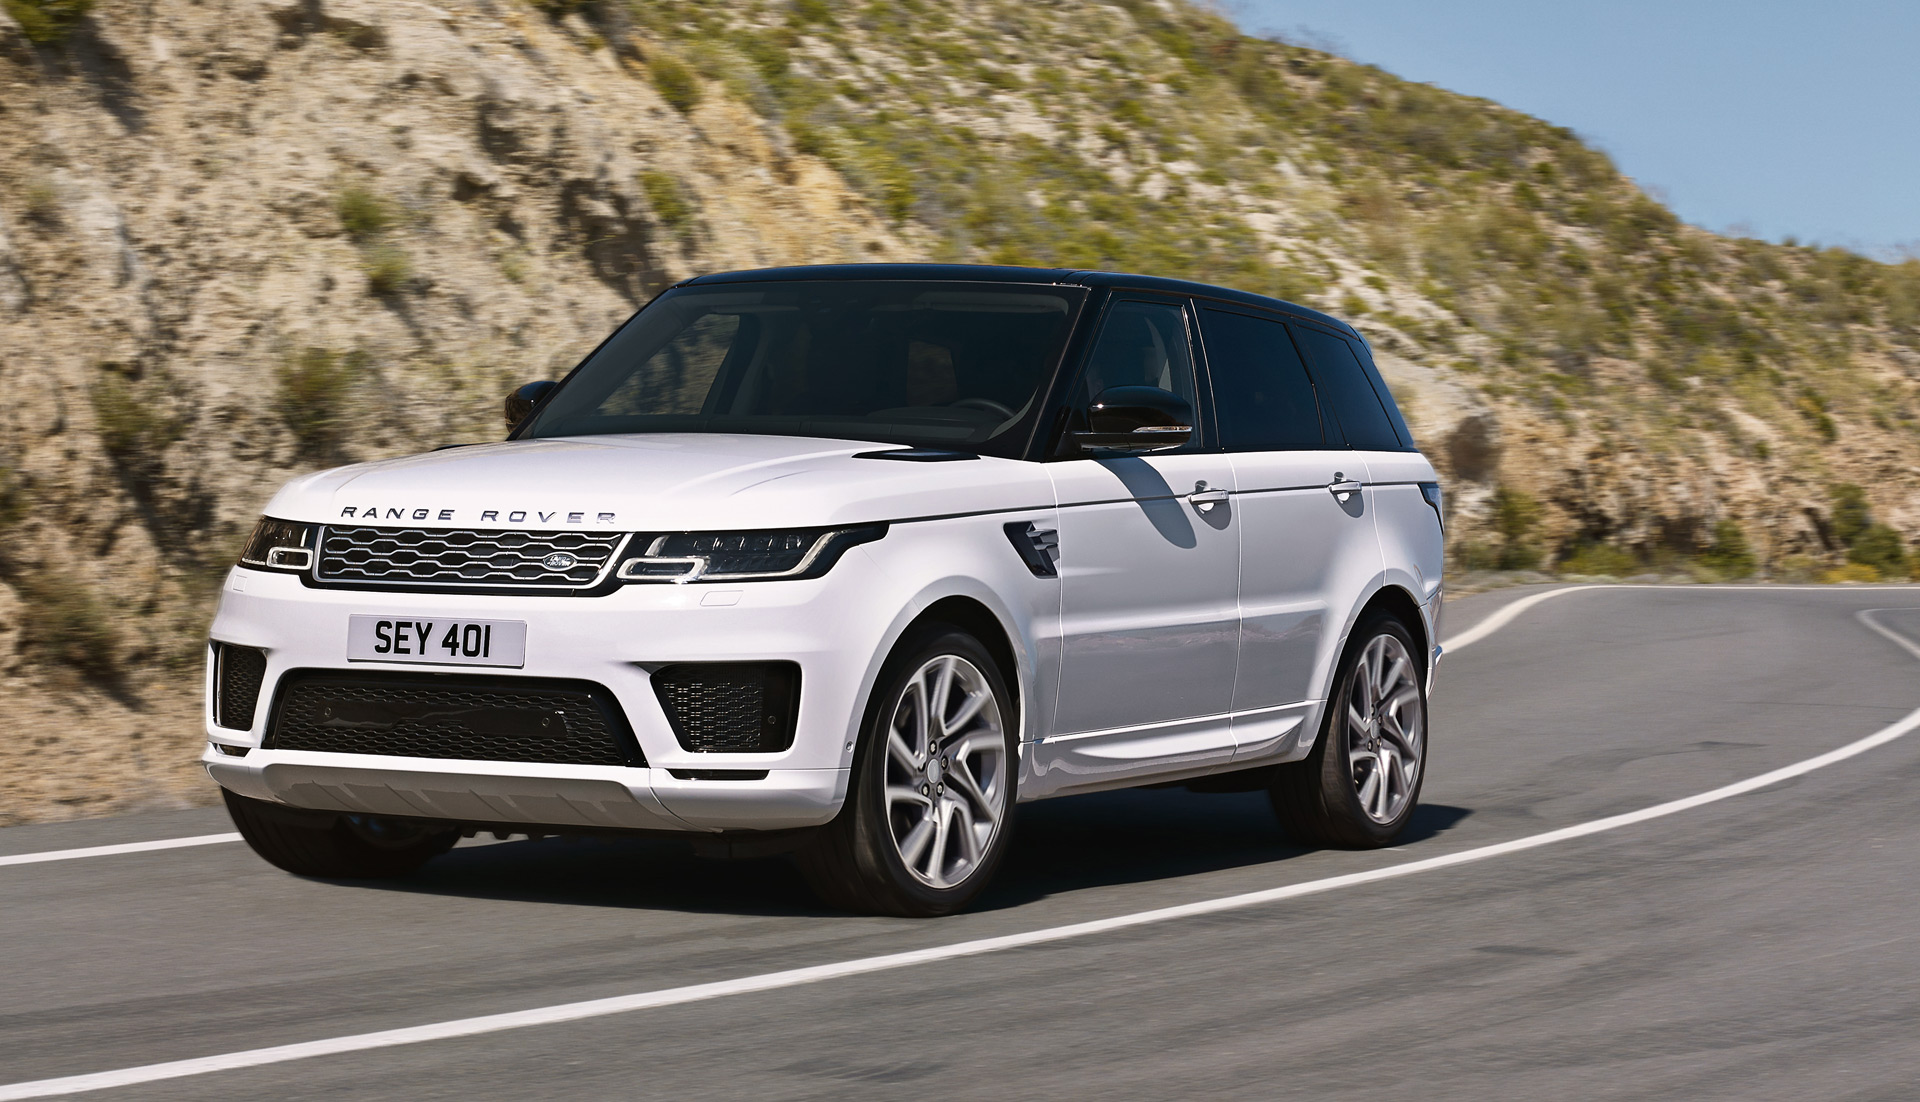 2019 Range Rover Sport P400e plug in hybrid on sale in US in